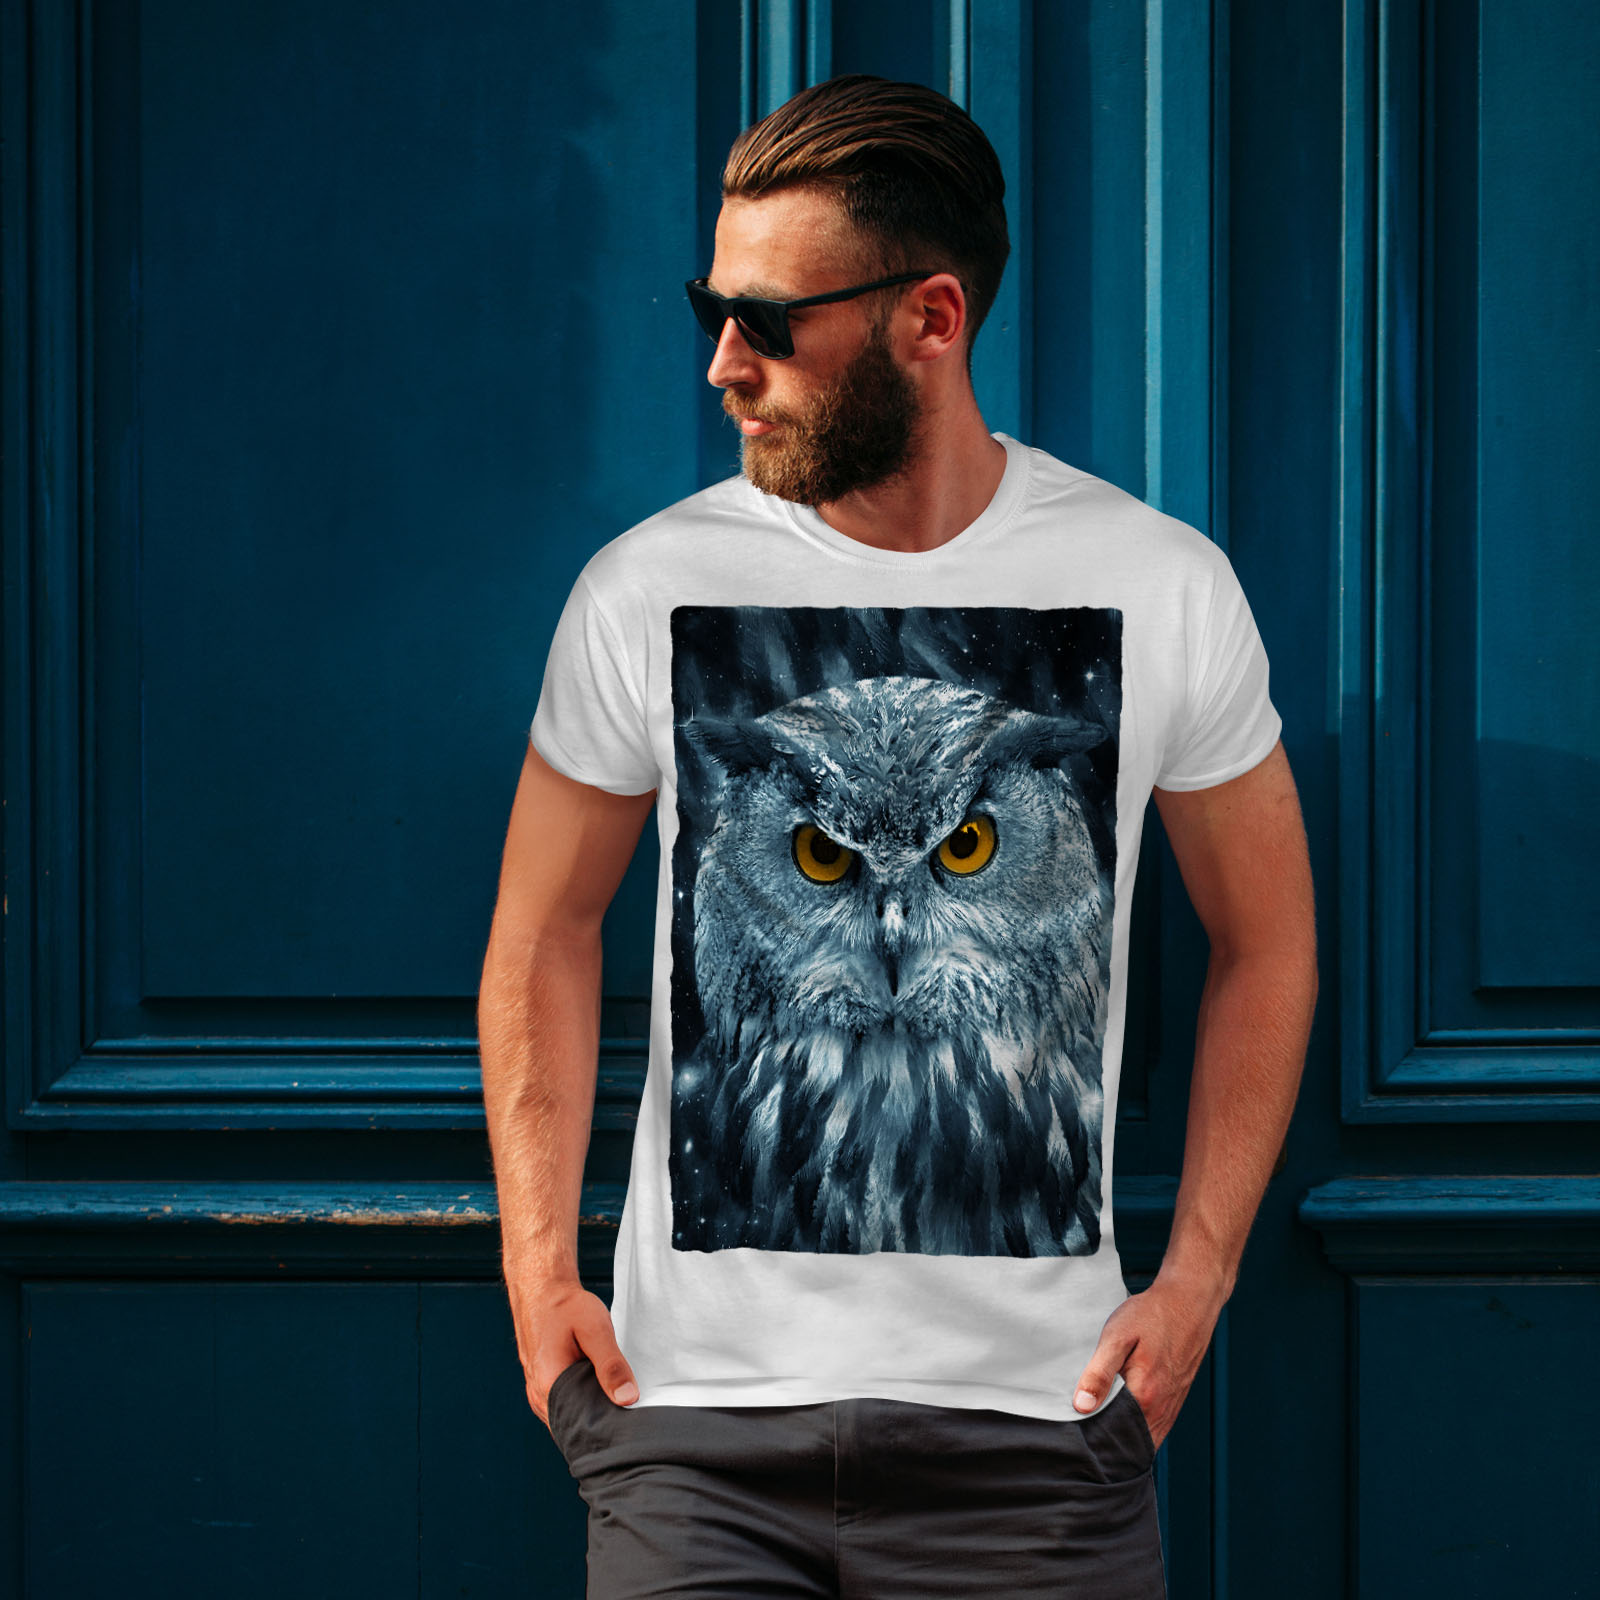 miniature 10 - Wellcoda-Wild-Looking-Owl-Mens-T-shirt-Mother-Graphic-Design-Printed-Tee